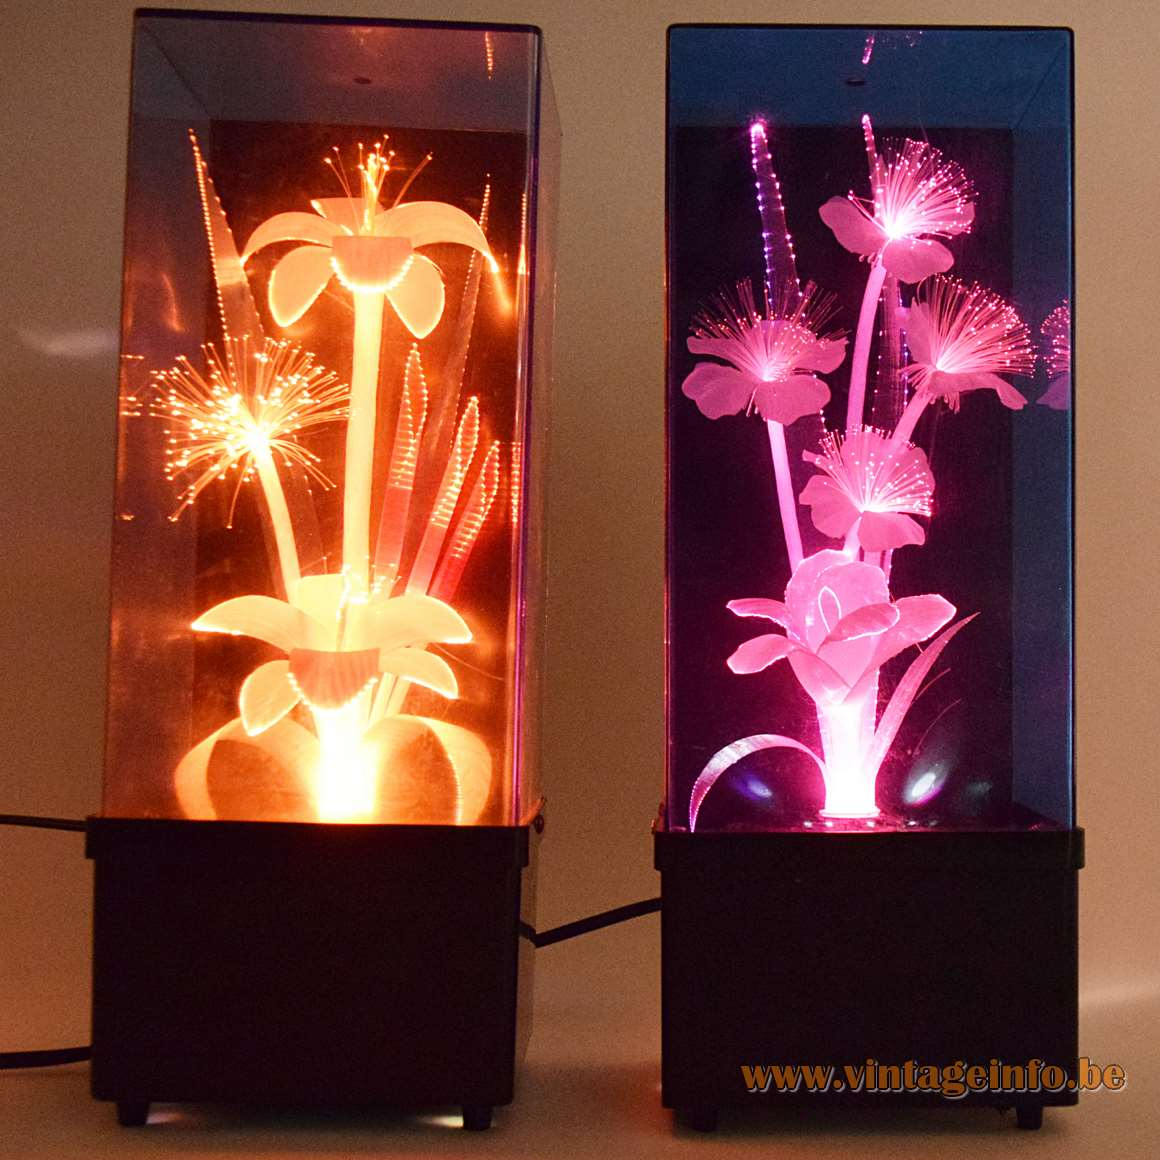 Fiberglass Flower Kitsch Table Lamps square black plastic base changing colours 1970s 1980s Taiwan Massive